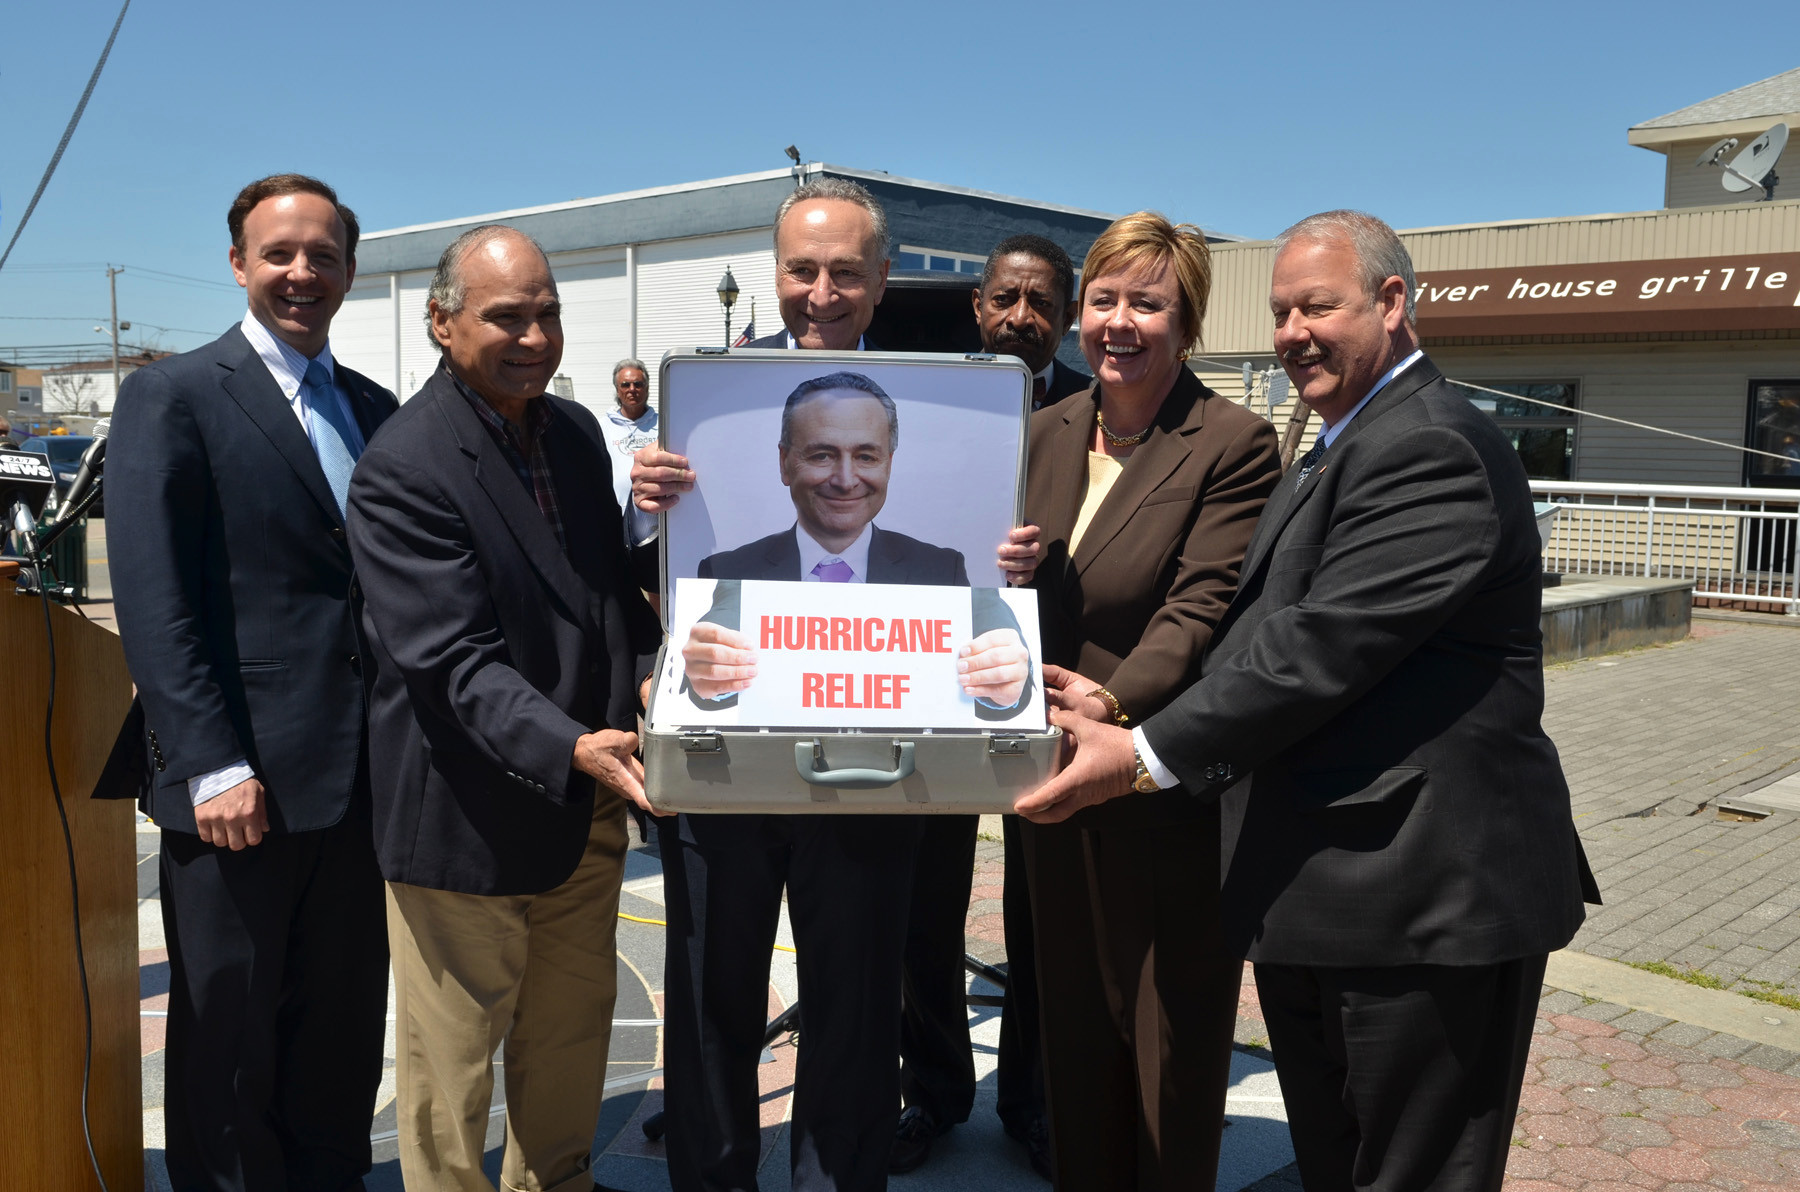 Courtesy of Town of Hempstead